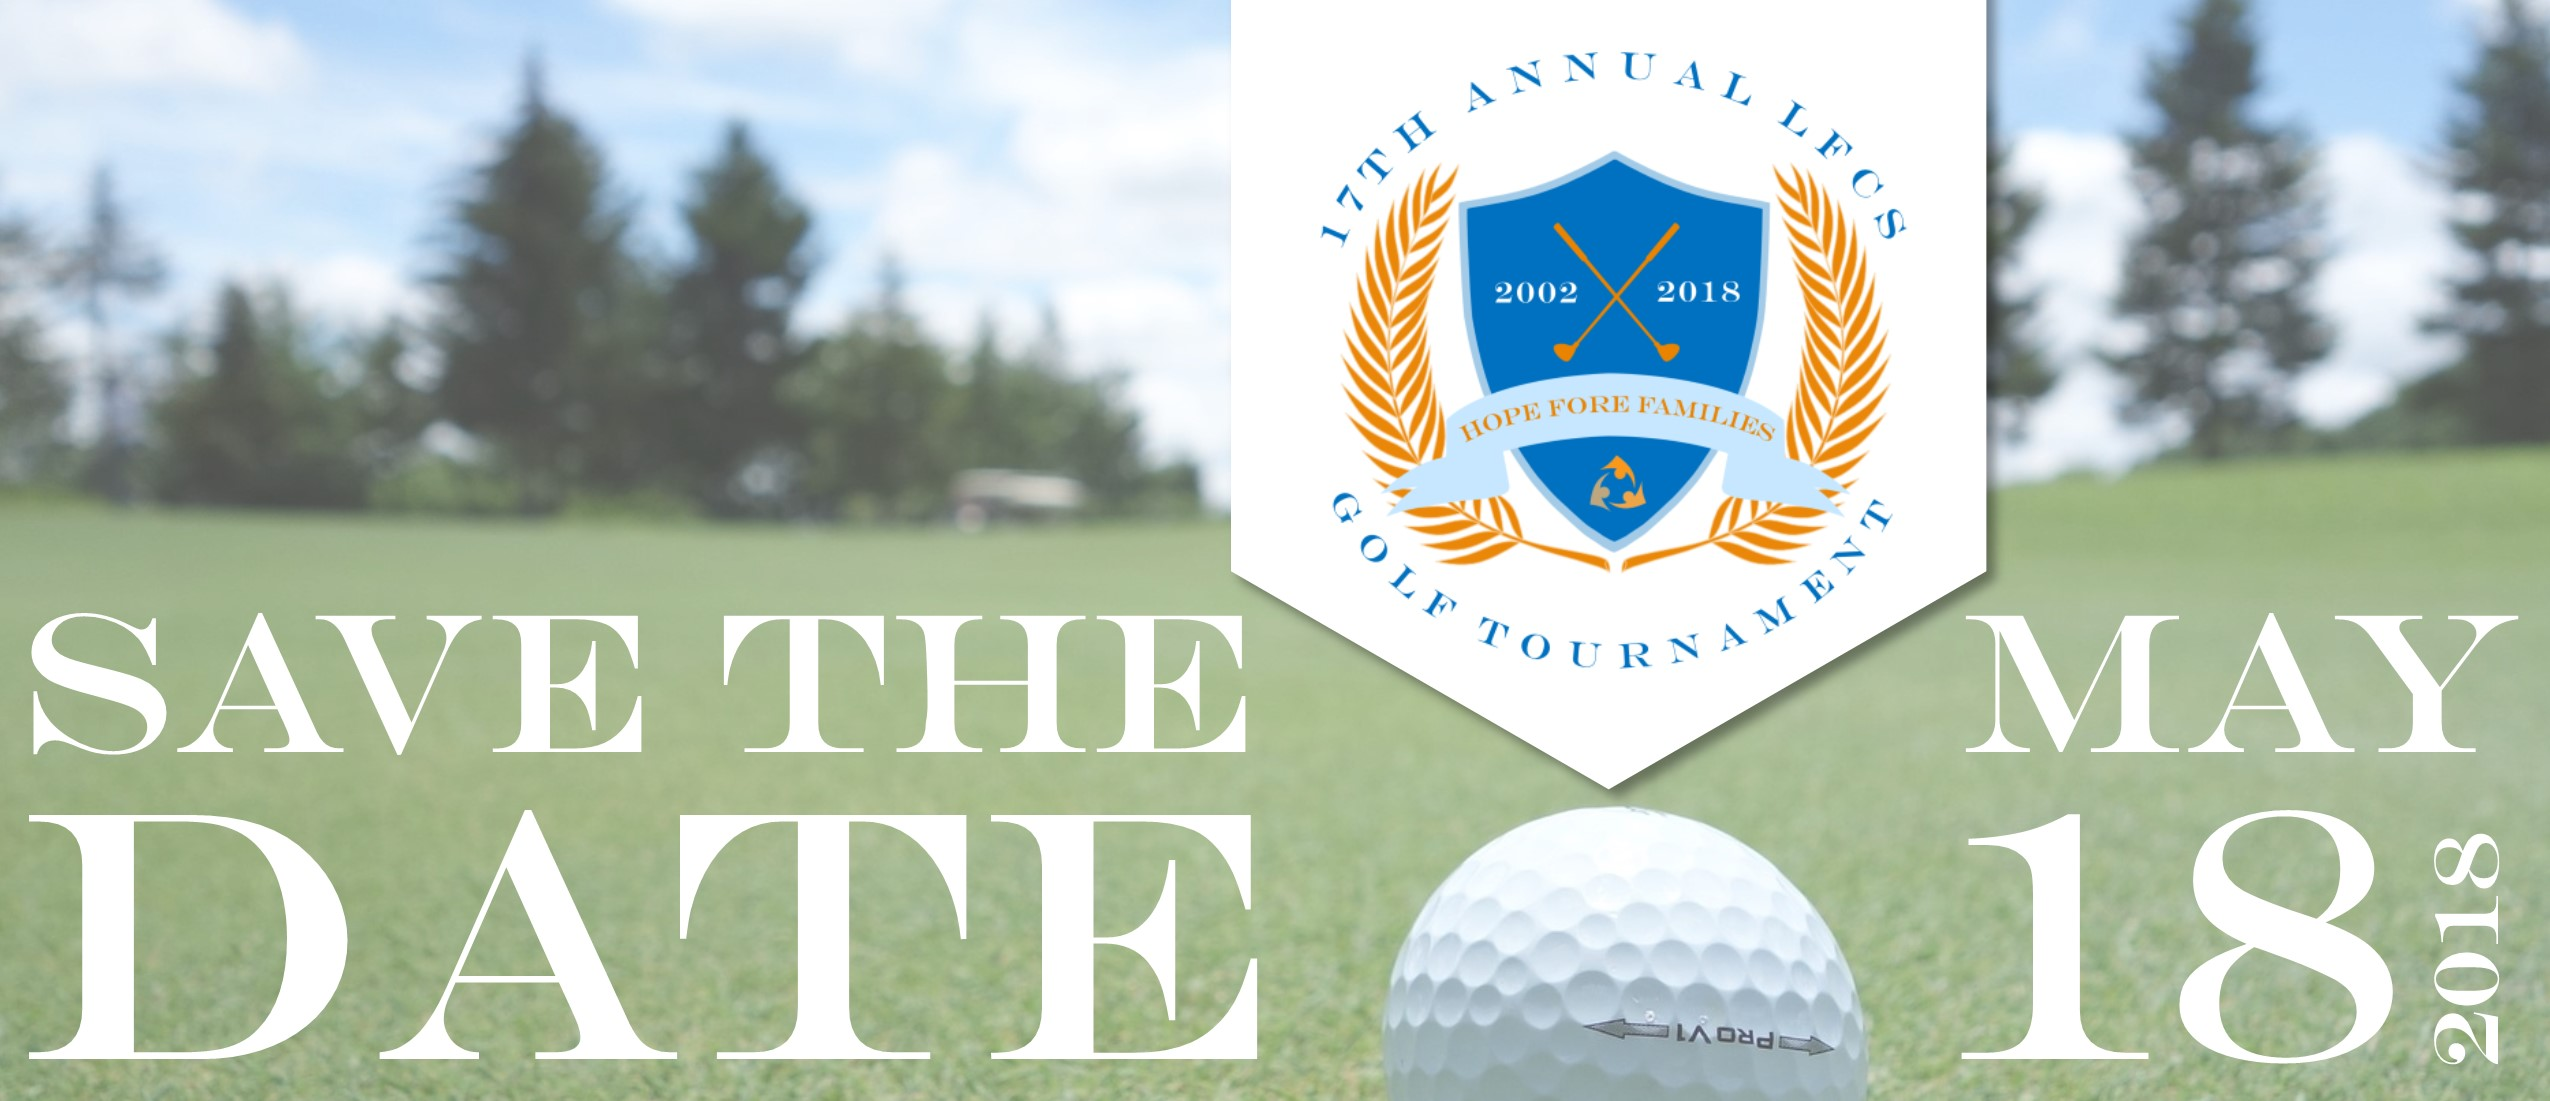 2018 Golf Tournament Save the Date - May 18, 2018